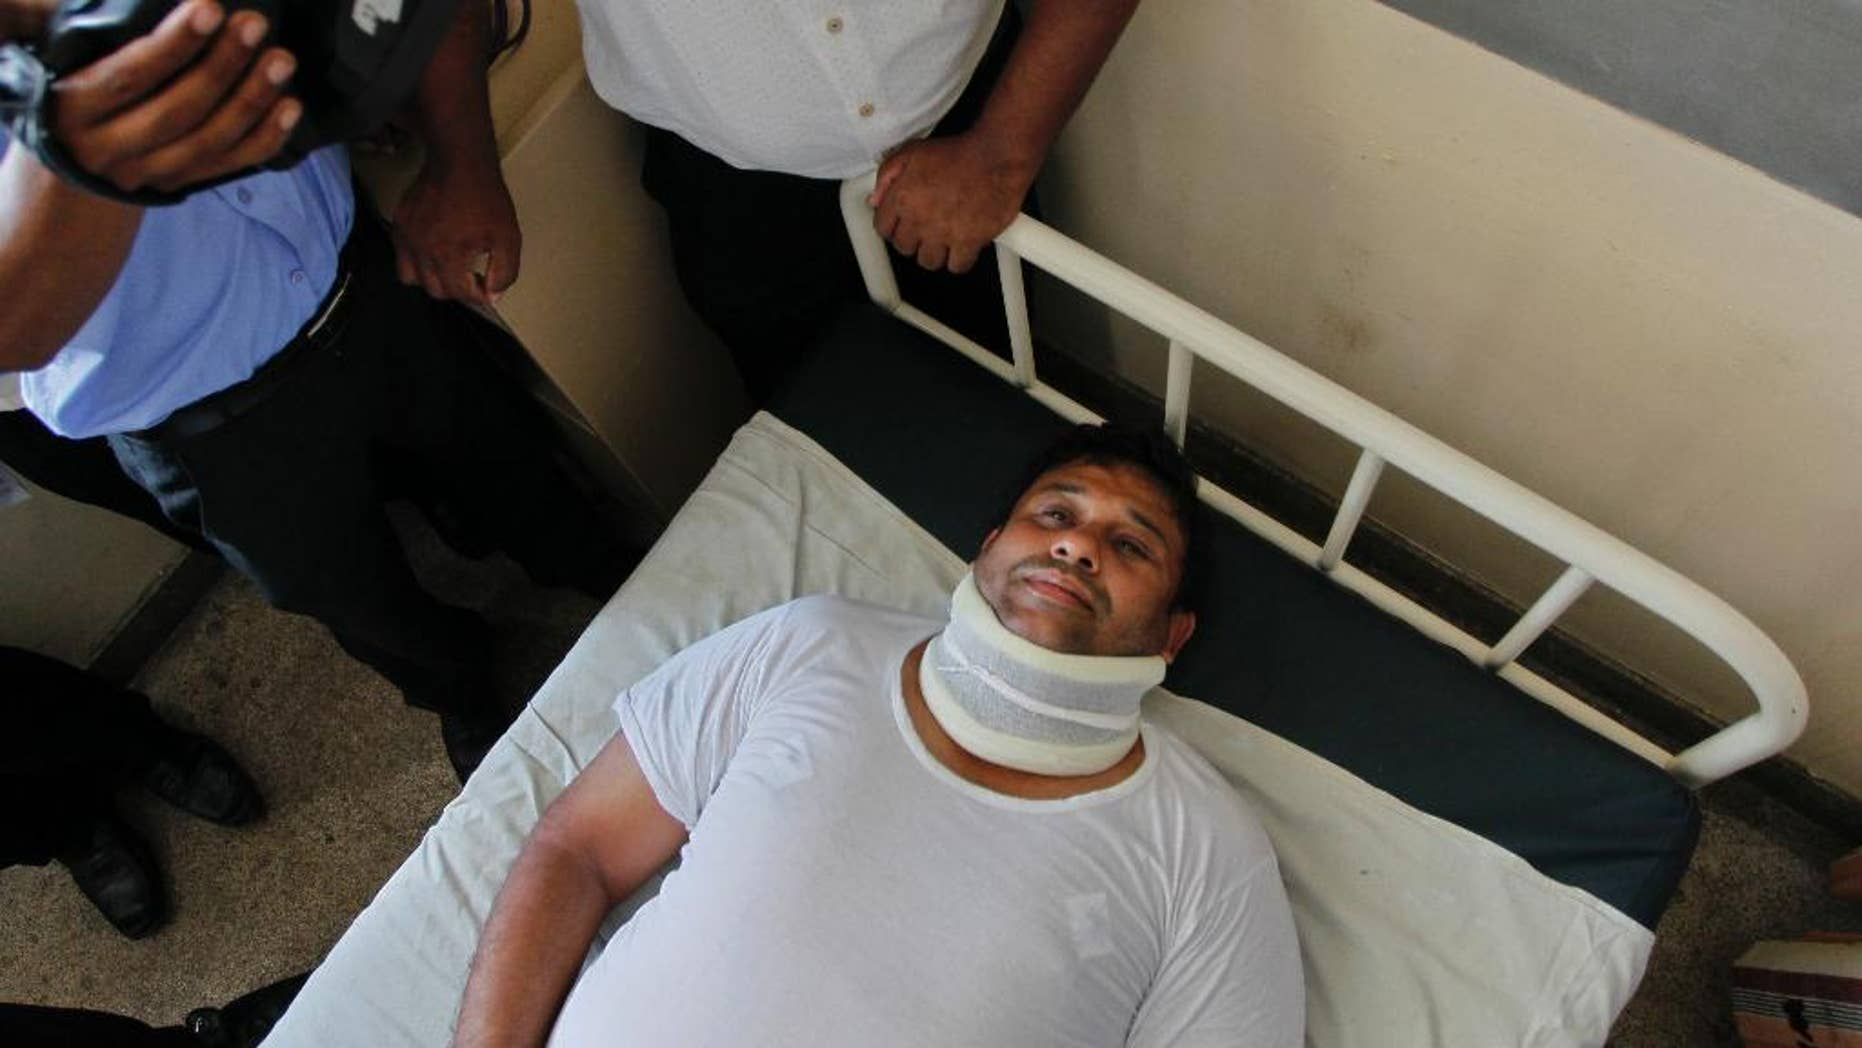 Sri Lanka's ruling United National Party lawmaker Sandith Samarasinghe lies on a hospital bed in Colombo, Sri Lanka, Tuesday, May 3, 2016. Samarasinghe was hospitalized and several lawmakers were injured in fisticuffs inside Sri Lanka's Parliament after a protest over the removal of military security for former President Mahinda Rajapakasa.(AP Photo/Eranga Jayawardena)